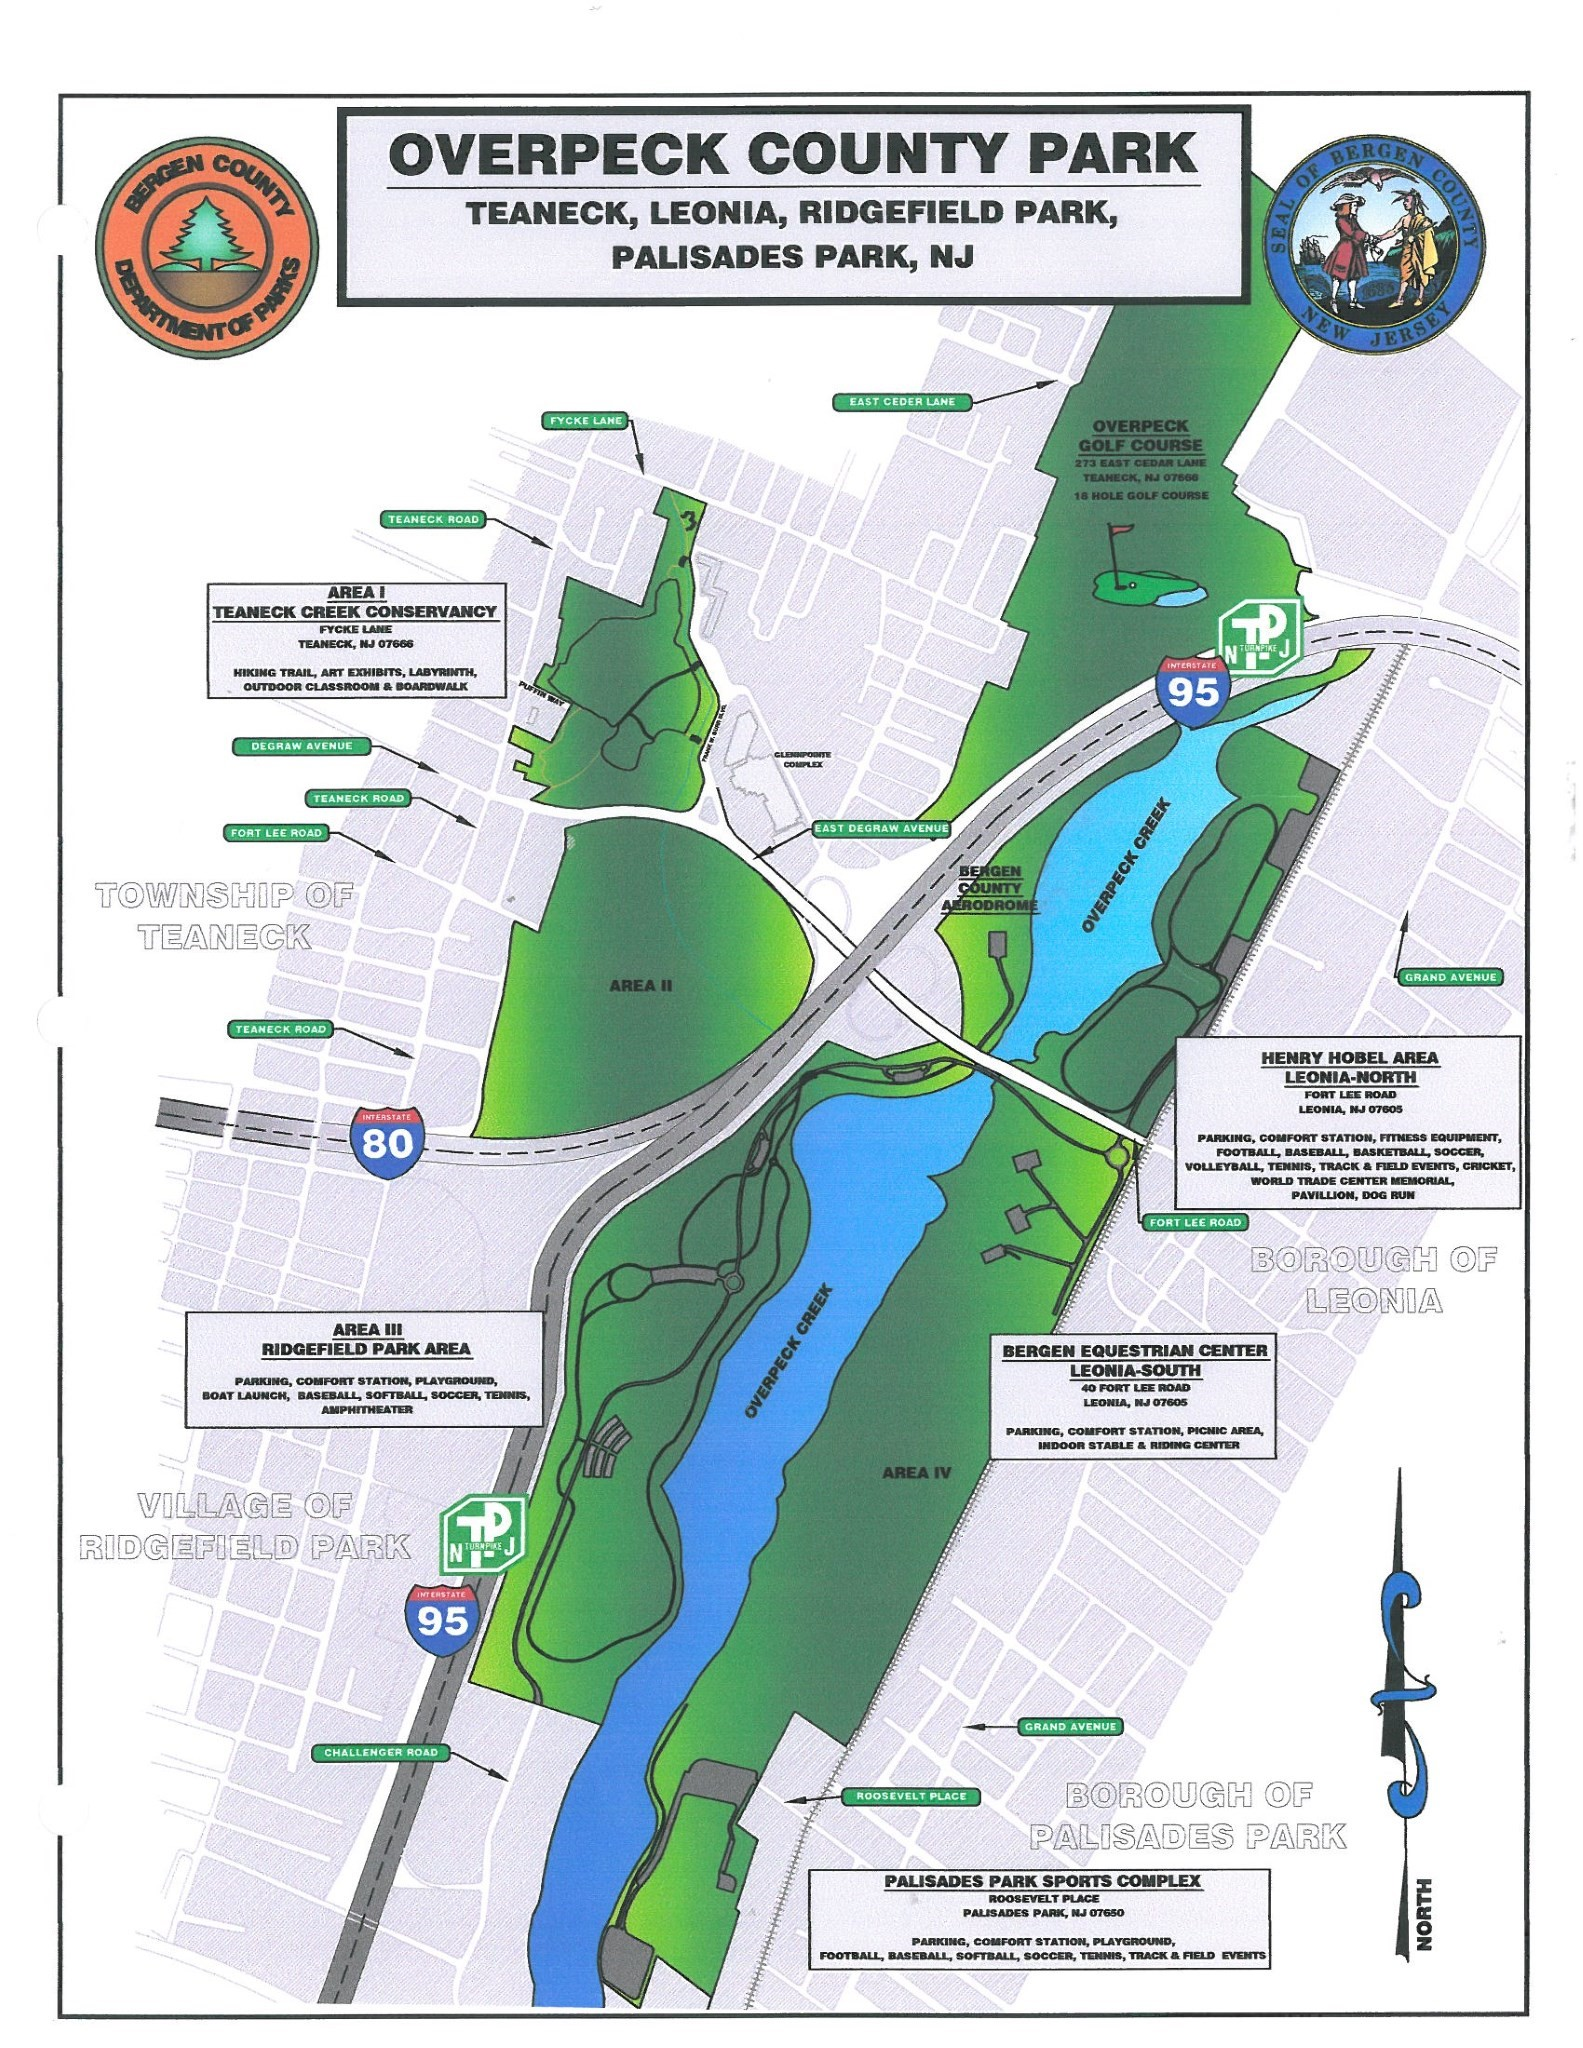 GC62EGR 15 - Overpeck Park Bike Trail (Traditional Cache) in New